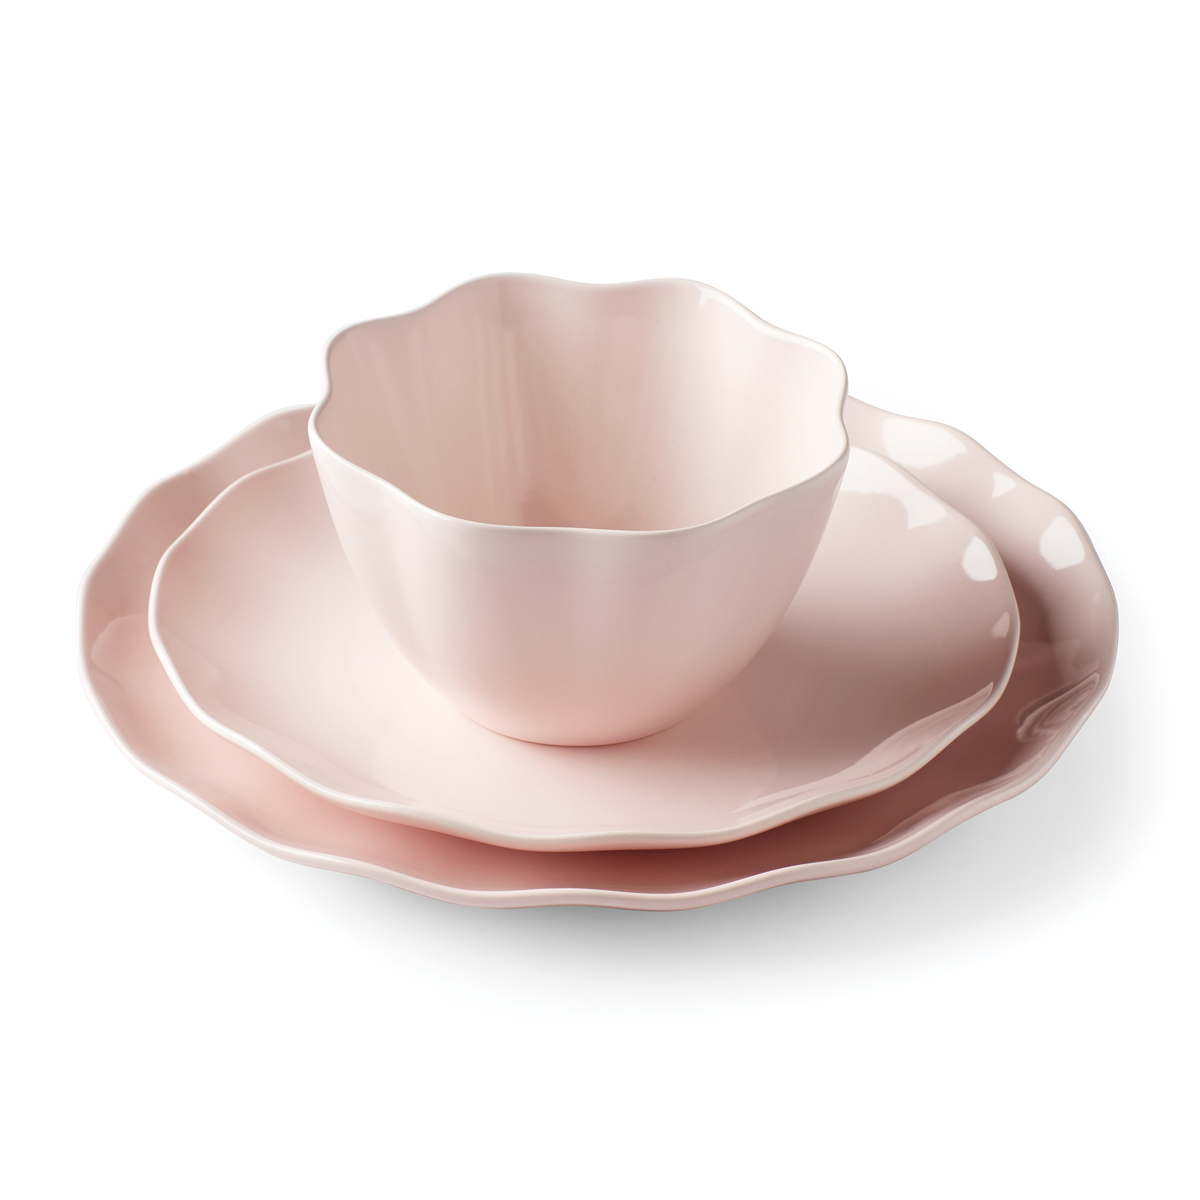 Kate Spade China by Lenox, Petal Ln Blush 3 Piece Plate Setting